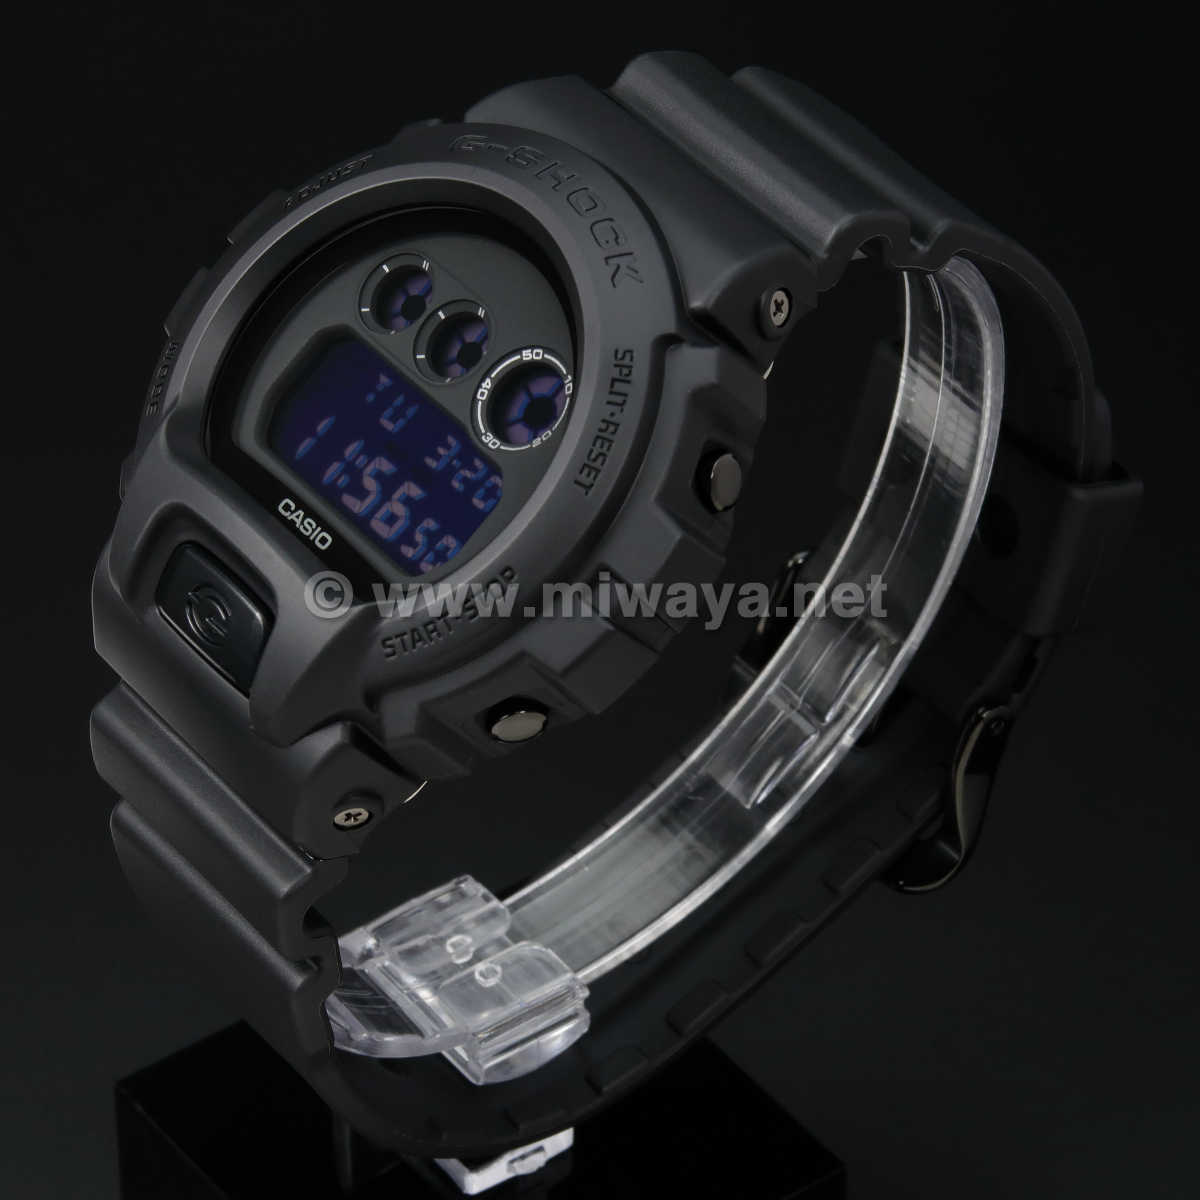 【G-SHOCK】DW-6900BB-1JF